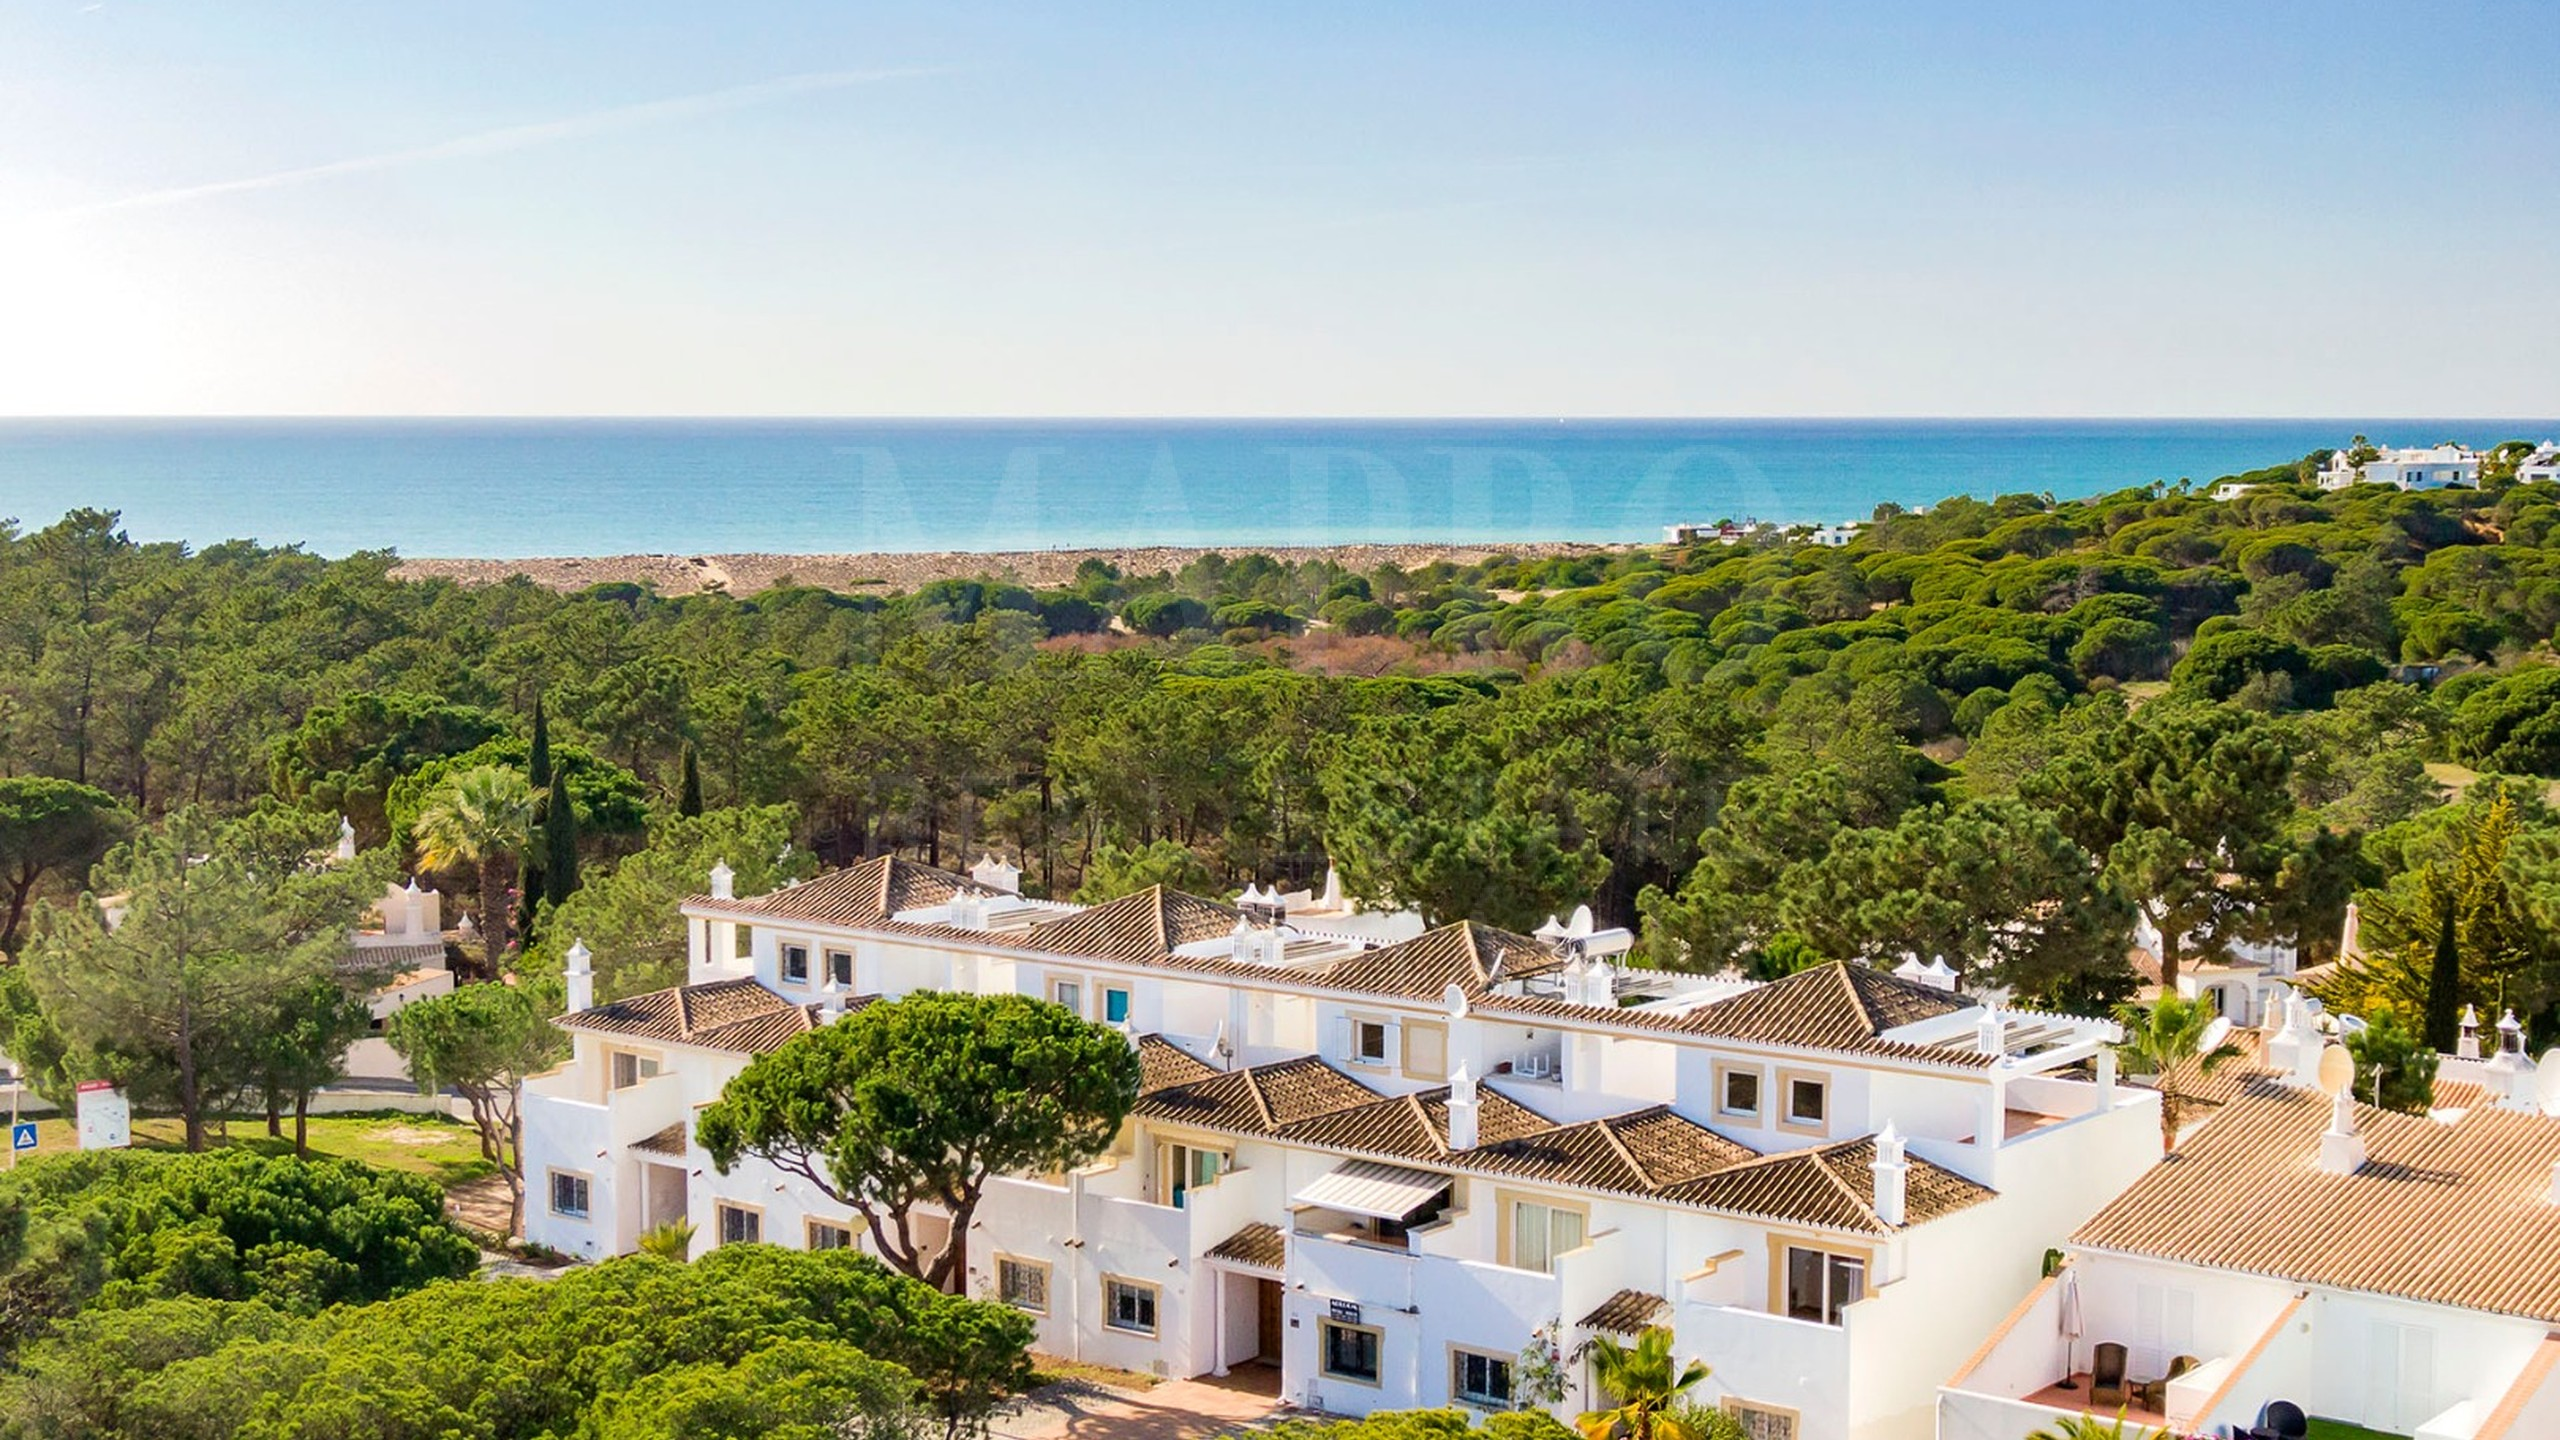 2 bedroom townhouse for sale in Vale do Garrão, Algarve